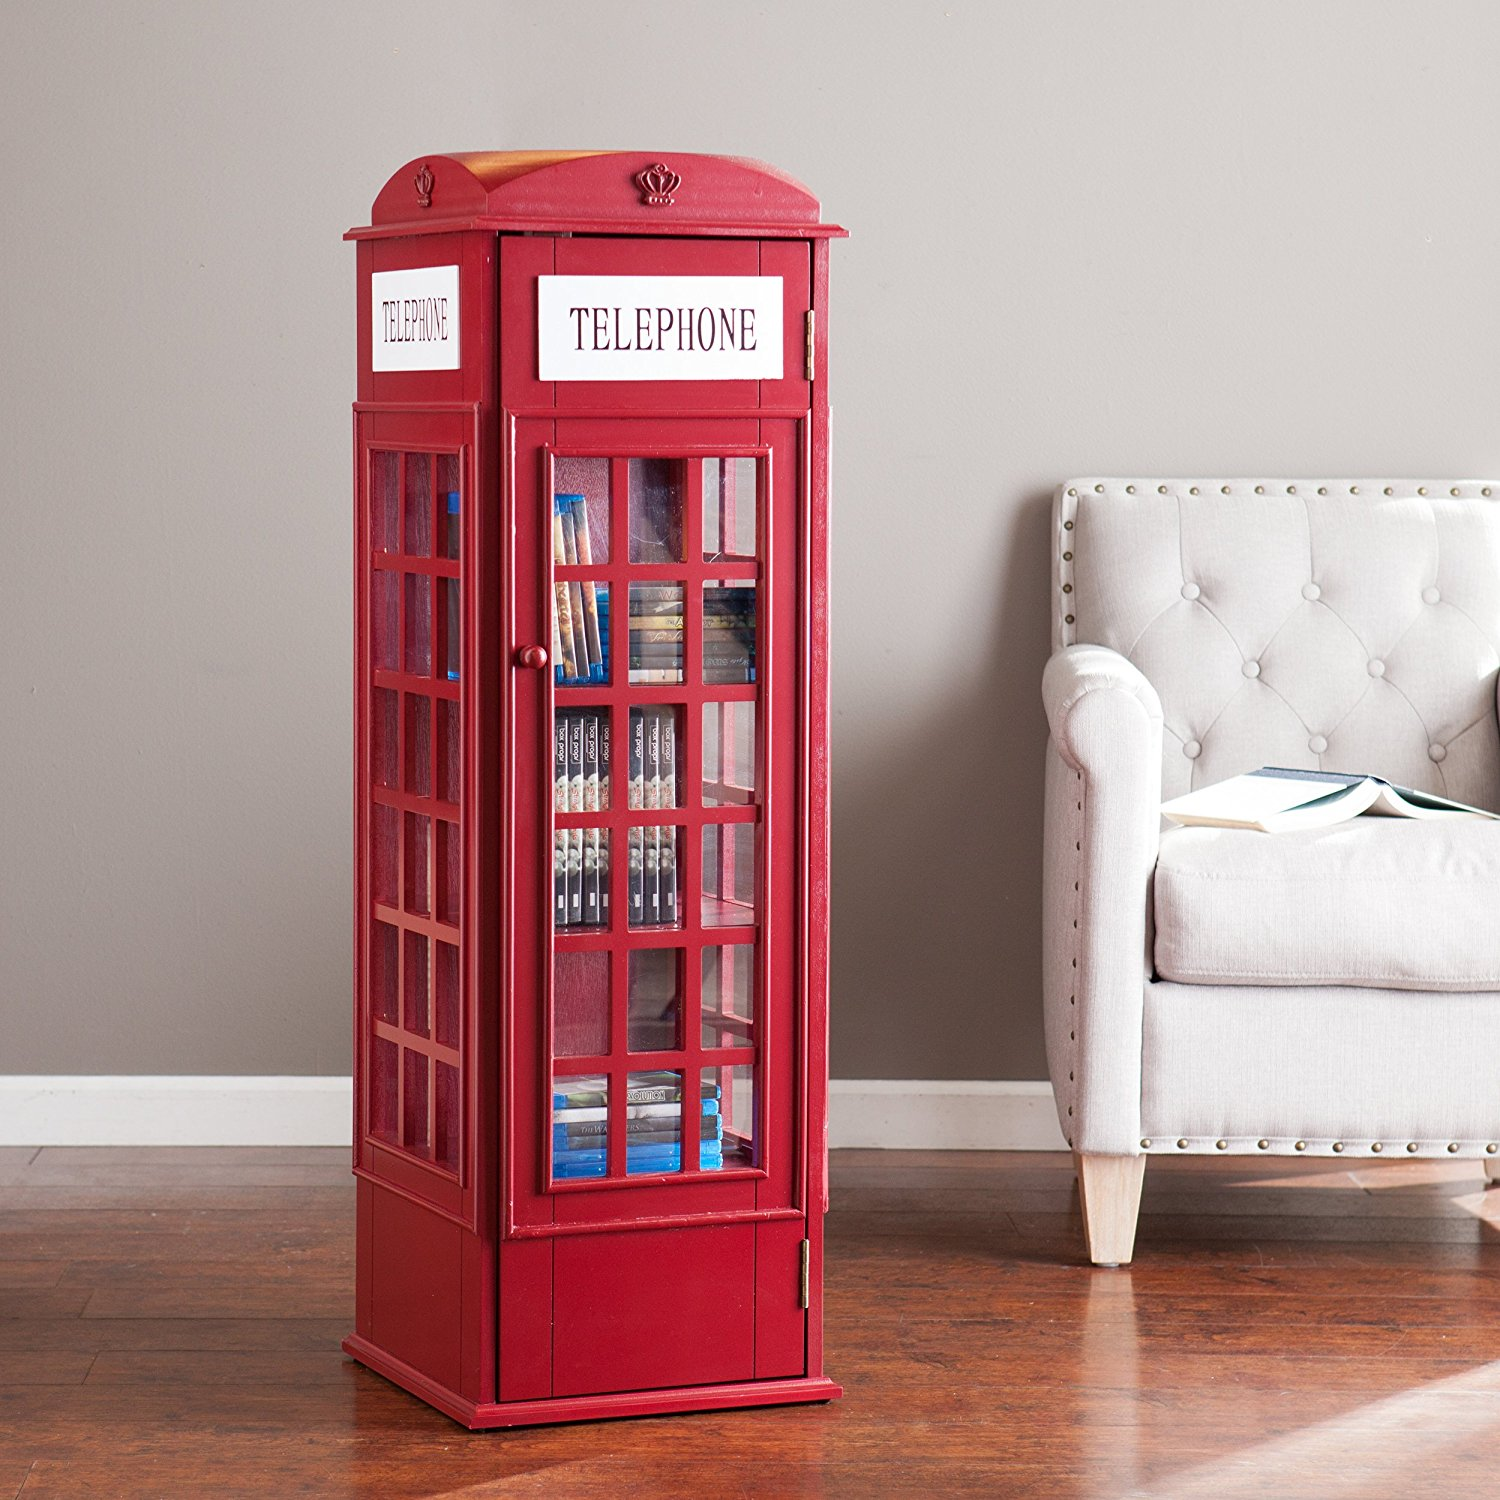 Bring A British Phone Booth Into Your Home My Design42